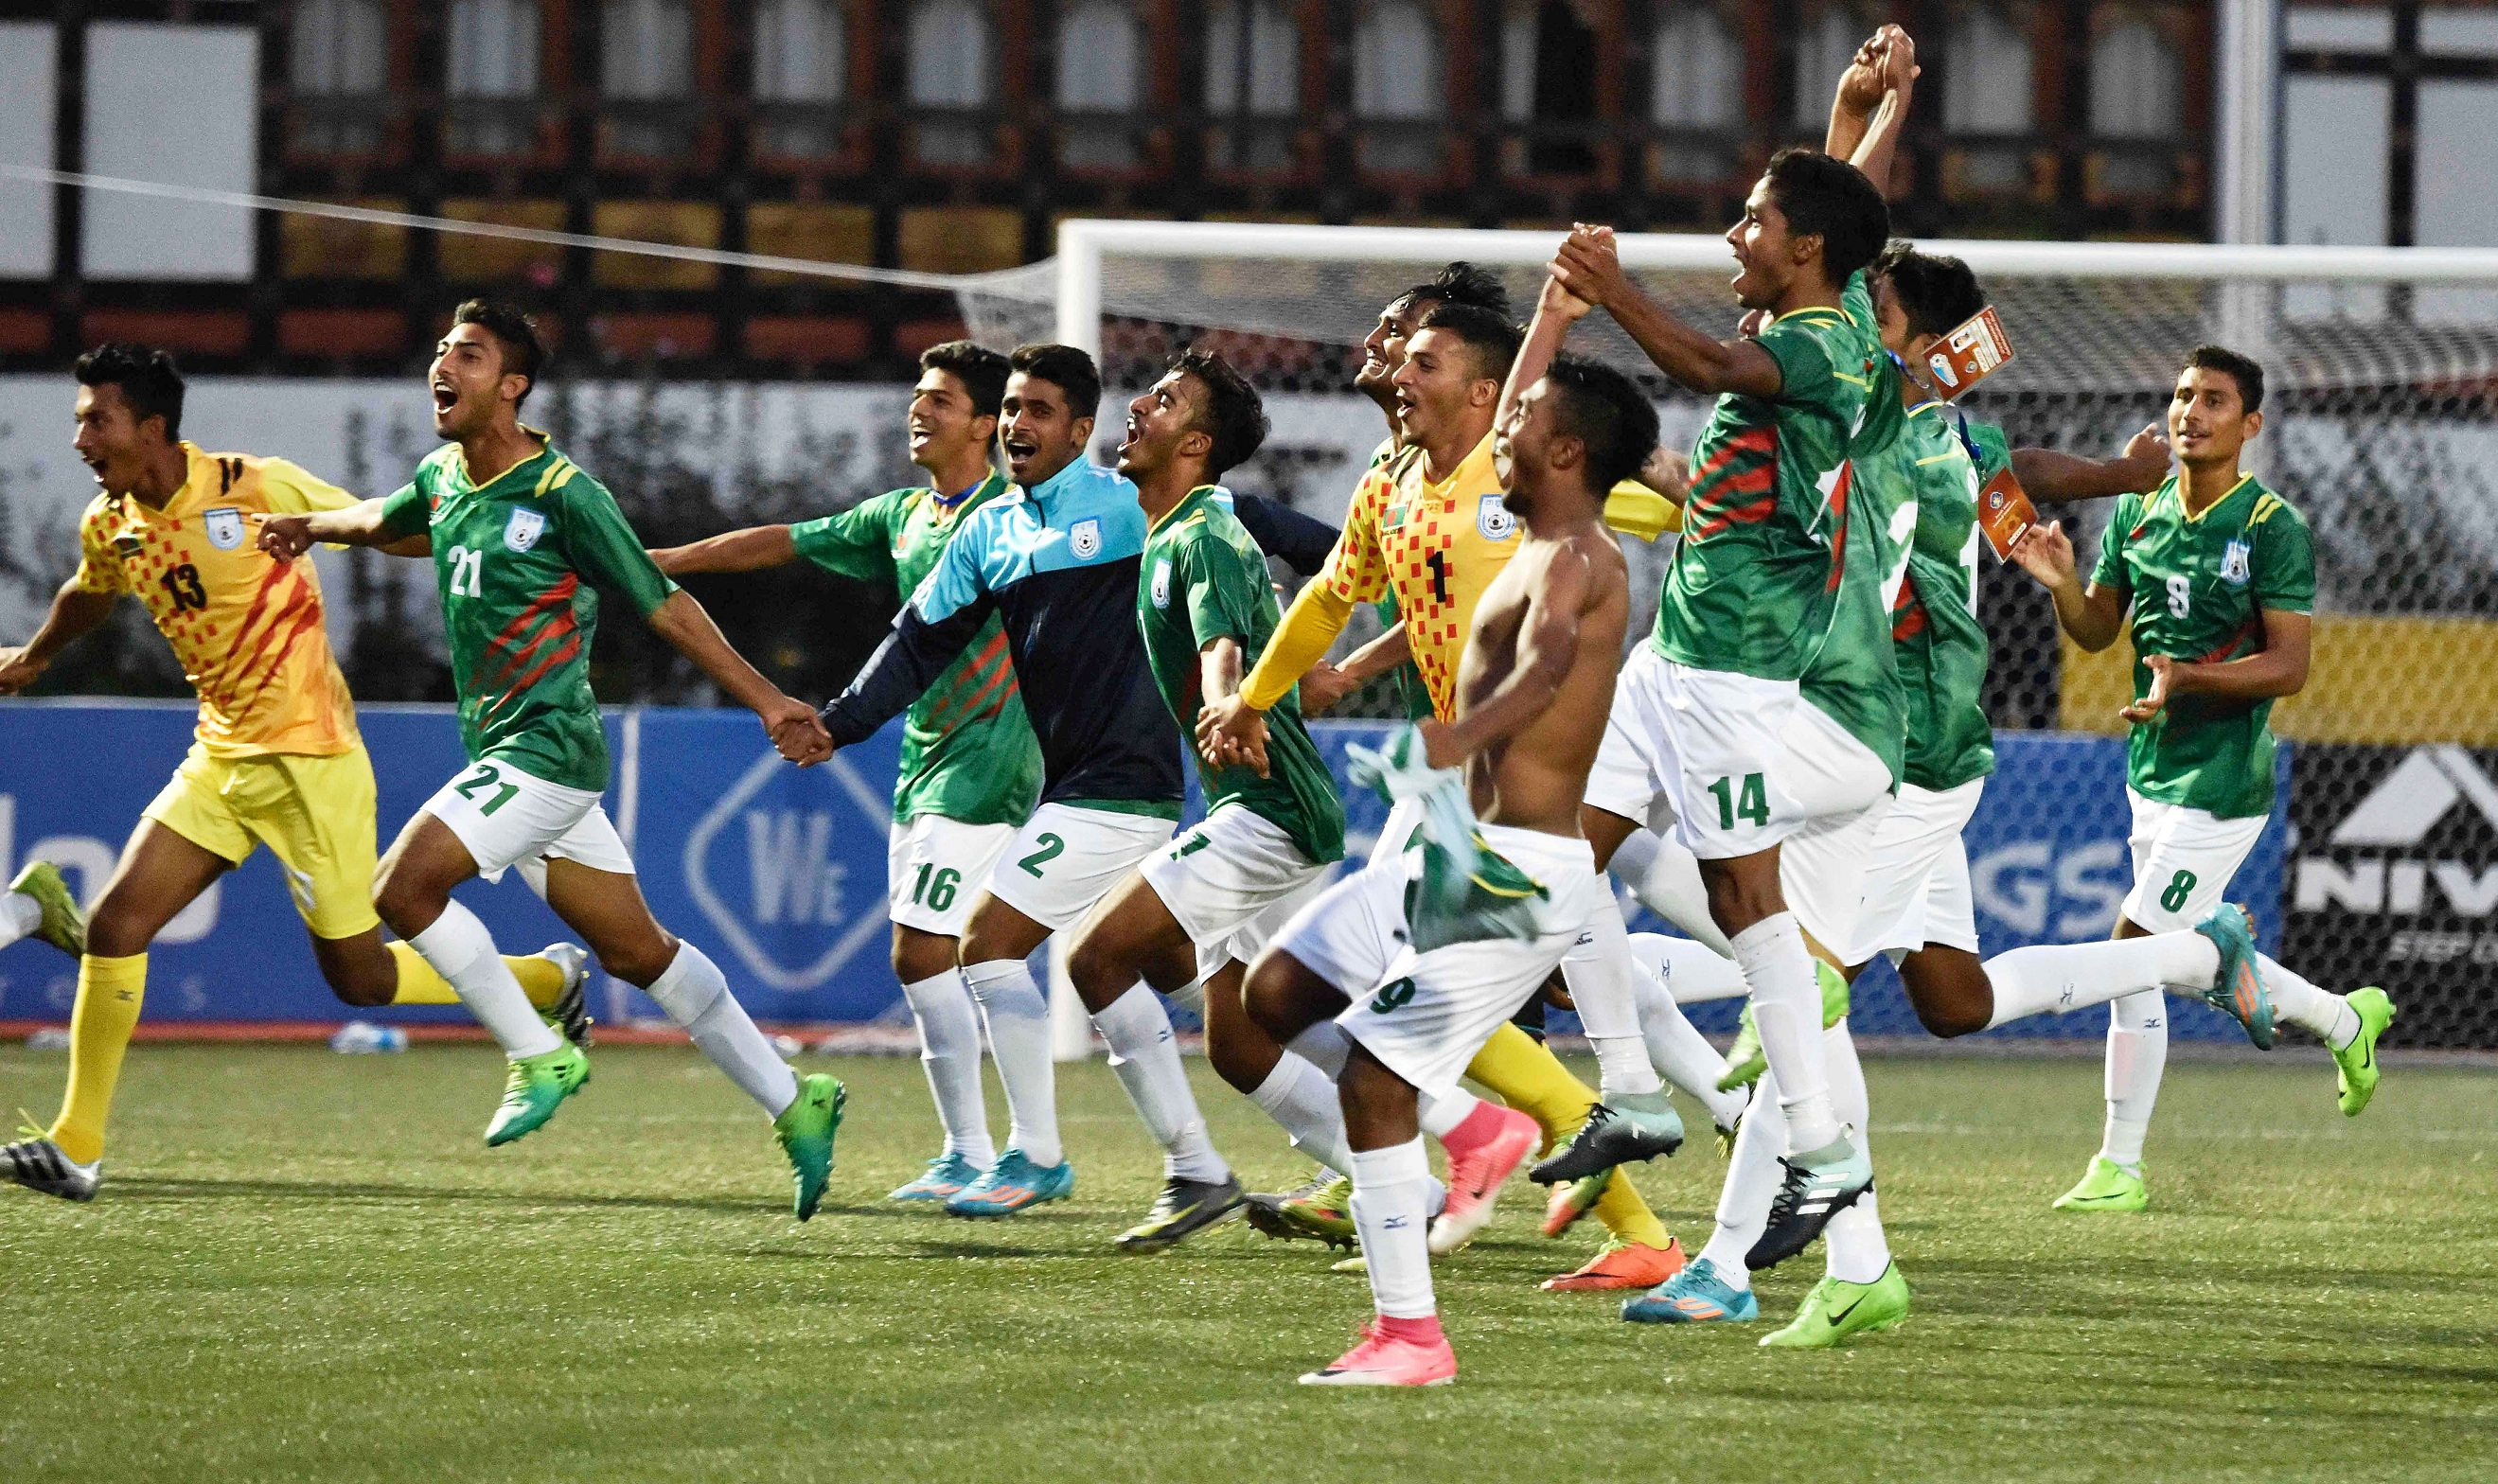 History as Bangladesh Reached the 2nd Round by Defeating Qatar at Asian Games